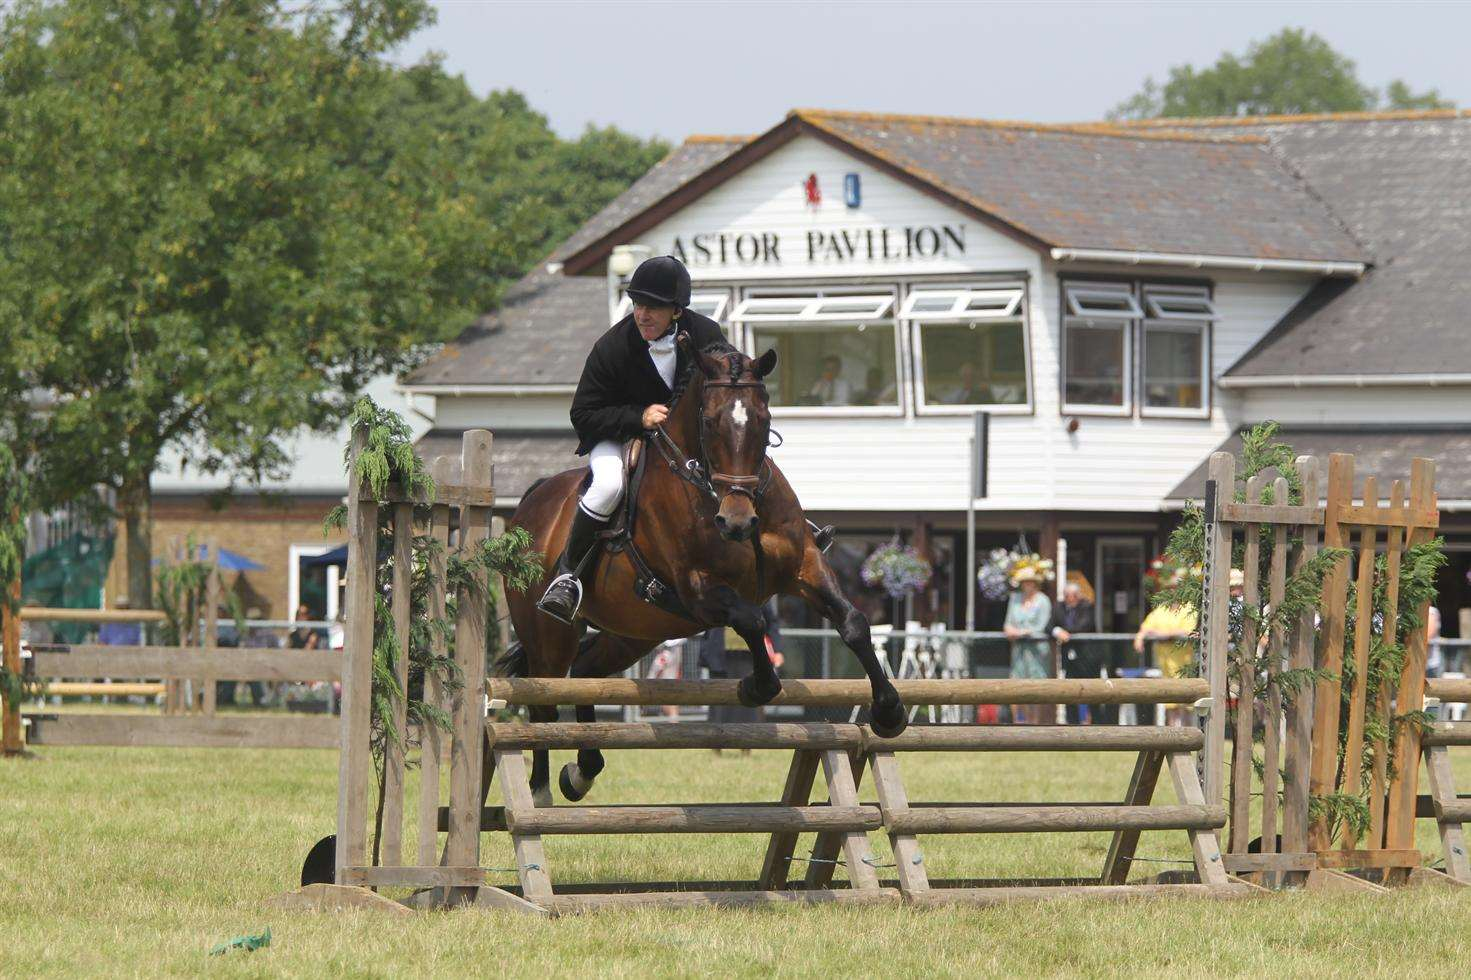 Horse riders at an equestrian event at The Kent County Show